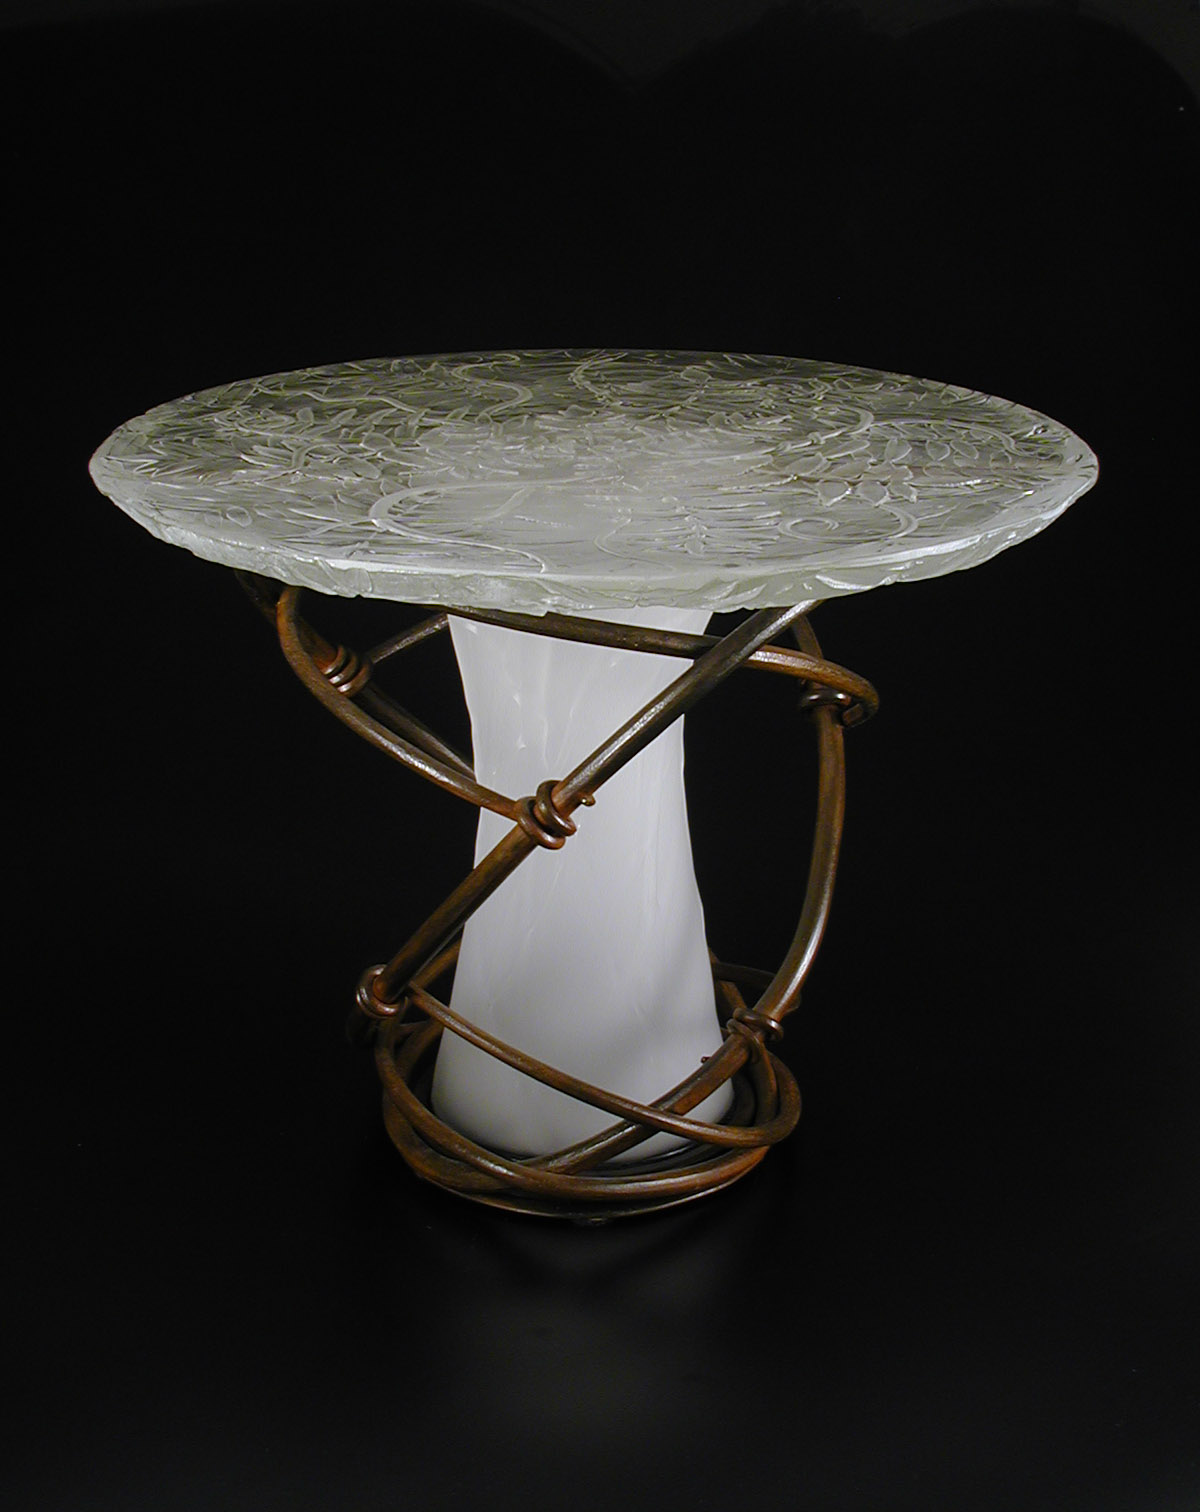 Table with cast glass top containing sumac pattern, base of forged iron twined vines around blown glass center.